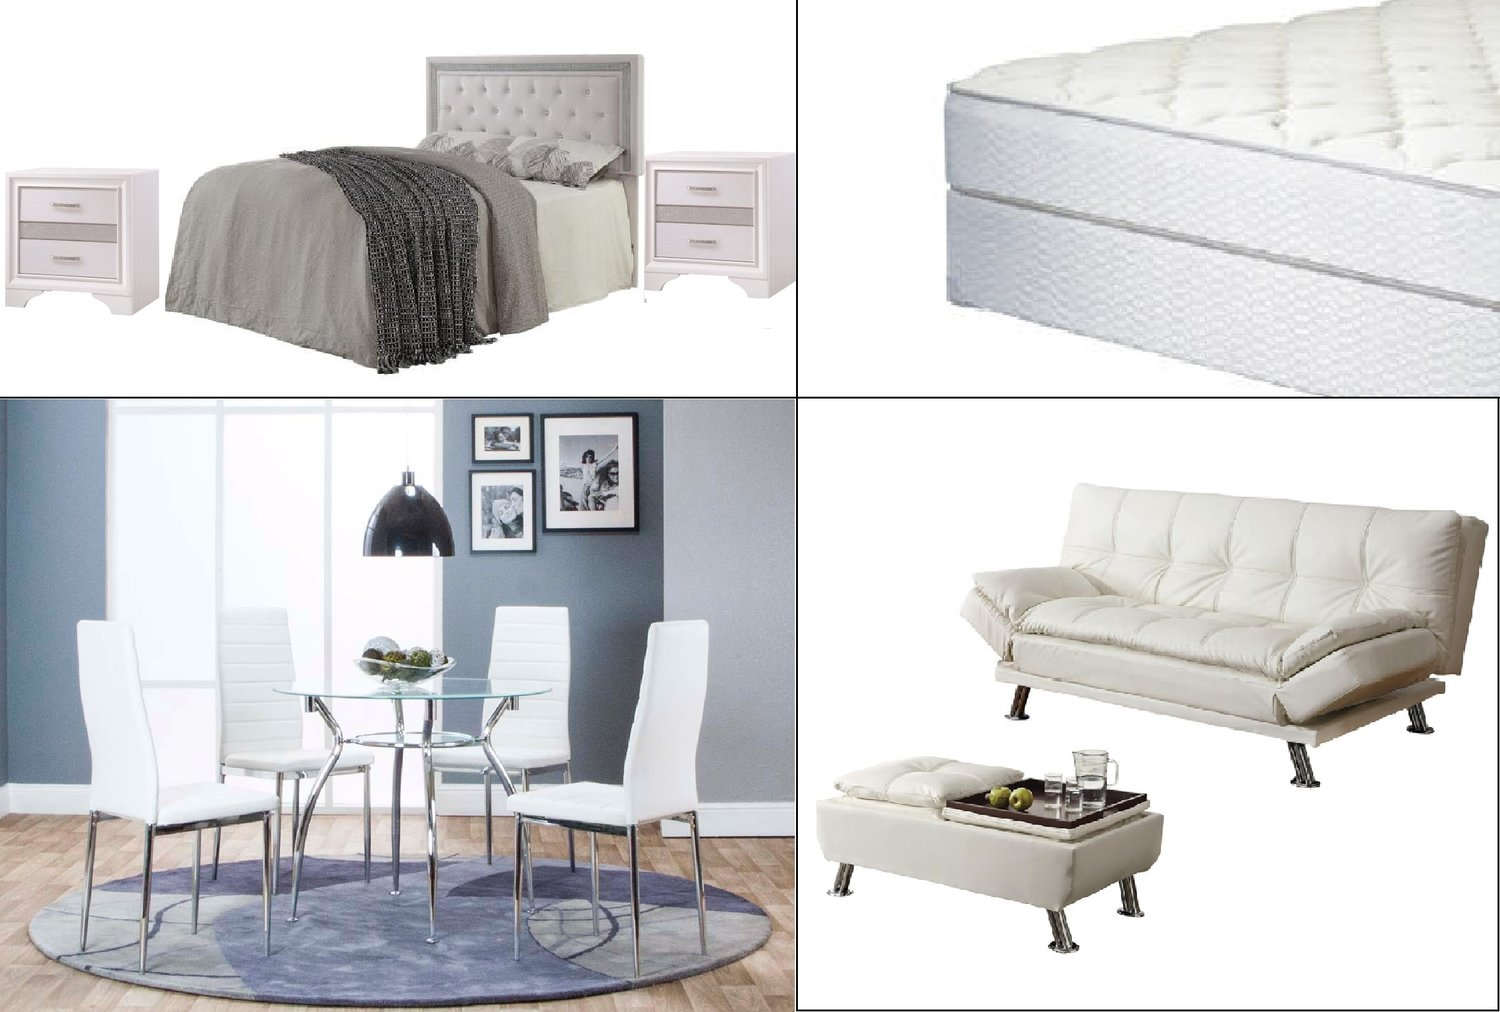 White Bling — Coco Furniture Gallery Furnishing Dreams